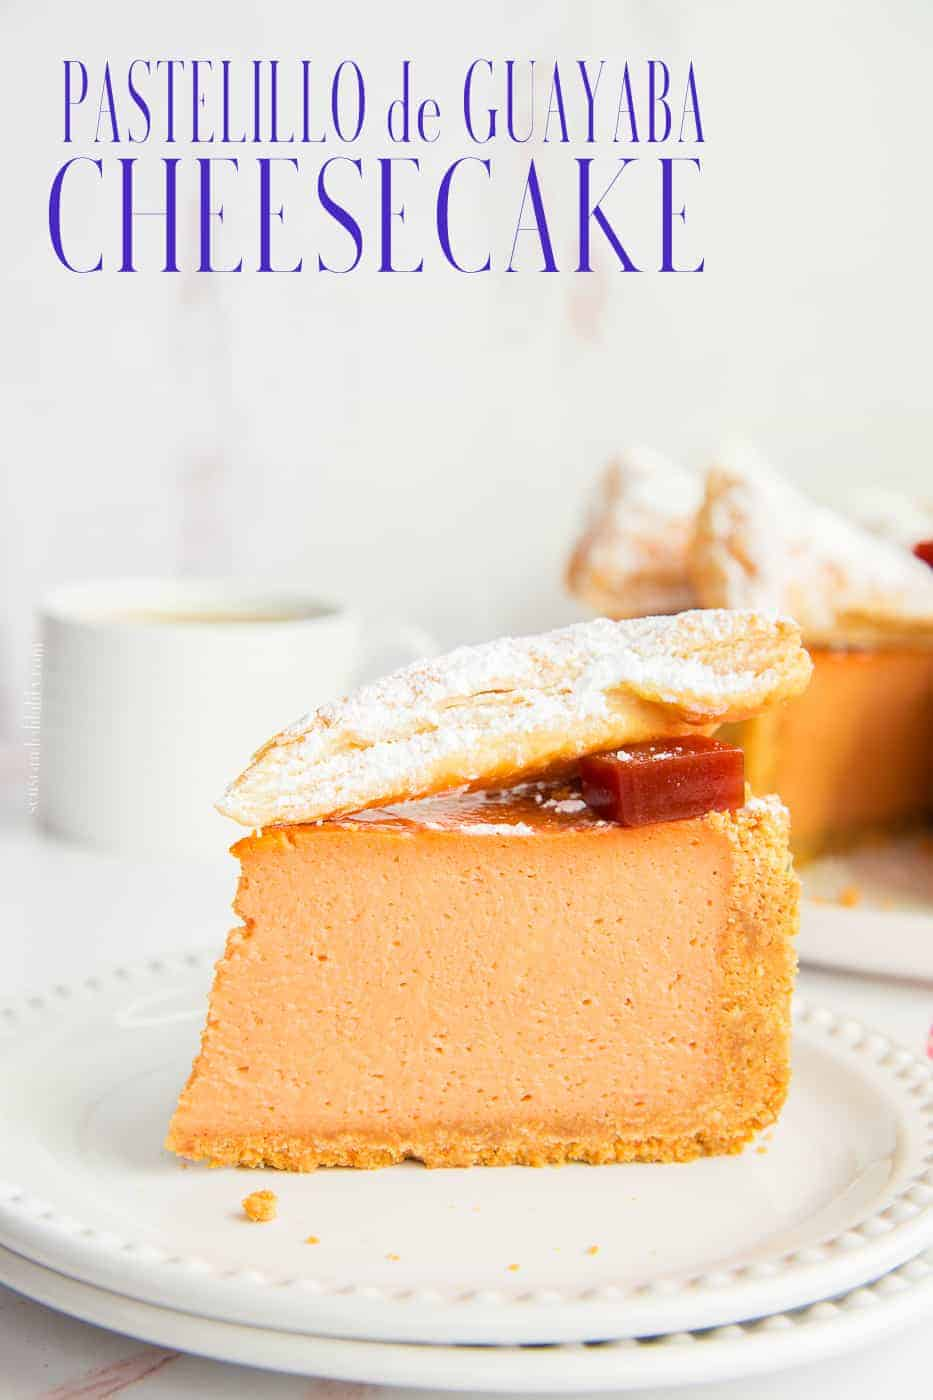 Pastelillo de Guayaba Cheesecake takes the flavors and textures of the popular Puerto Rican pastry and bakes it into a creamy, decadent cheesecake. Maria Cookies form the base. Use a homemade or store-bought puff pastry sheet to top it. #PastelillosDeGuayaba #PuertoRicanRecipes #CheesecakeRecipe #PuertoRicanRecipeWriter #PastelitosDeGuayaba #GuavaPaste #Guayaba #PastaDeGuayaba #Navidades #PuffPastry #MariaCookies #HolidayBaking #ThanksgivingDessert #ChristmasDessert #HolidayDessertRecipe via @ediblesense